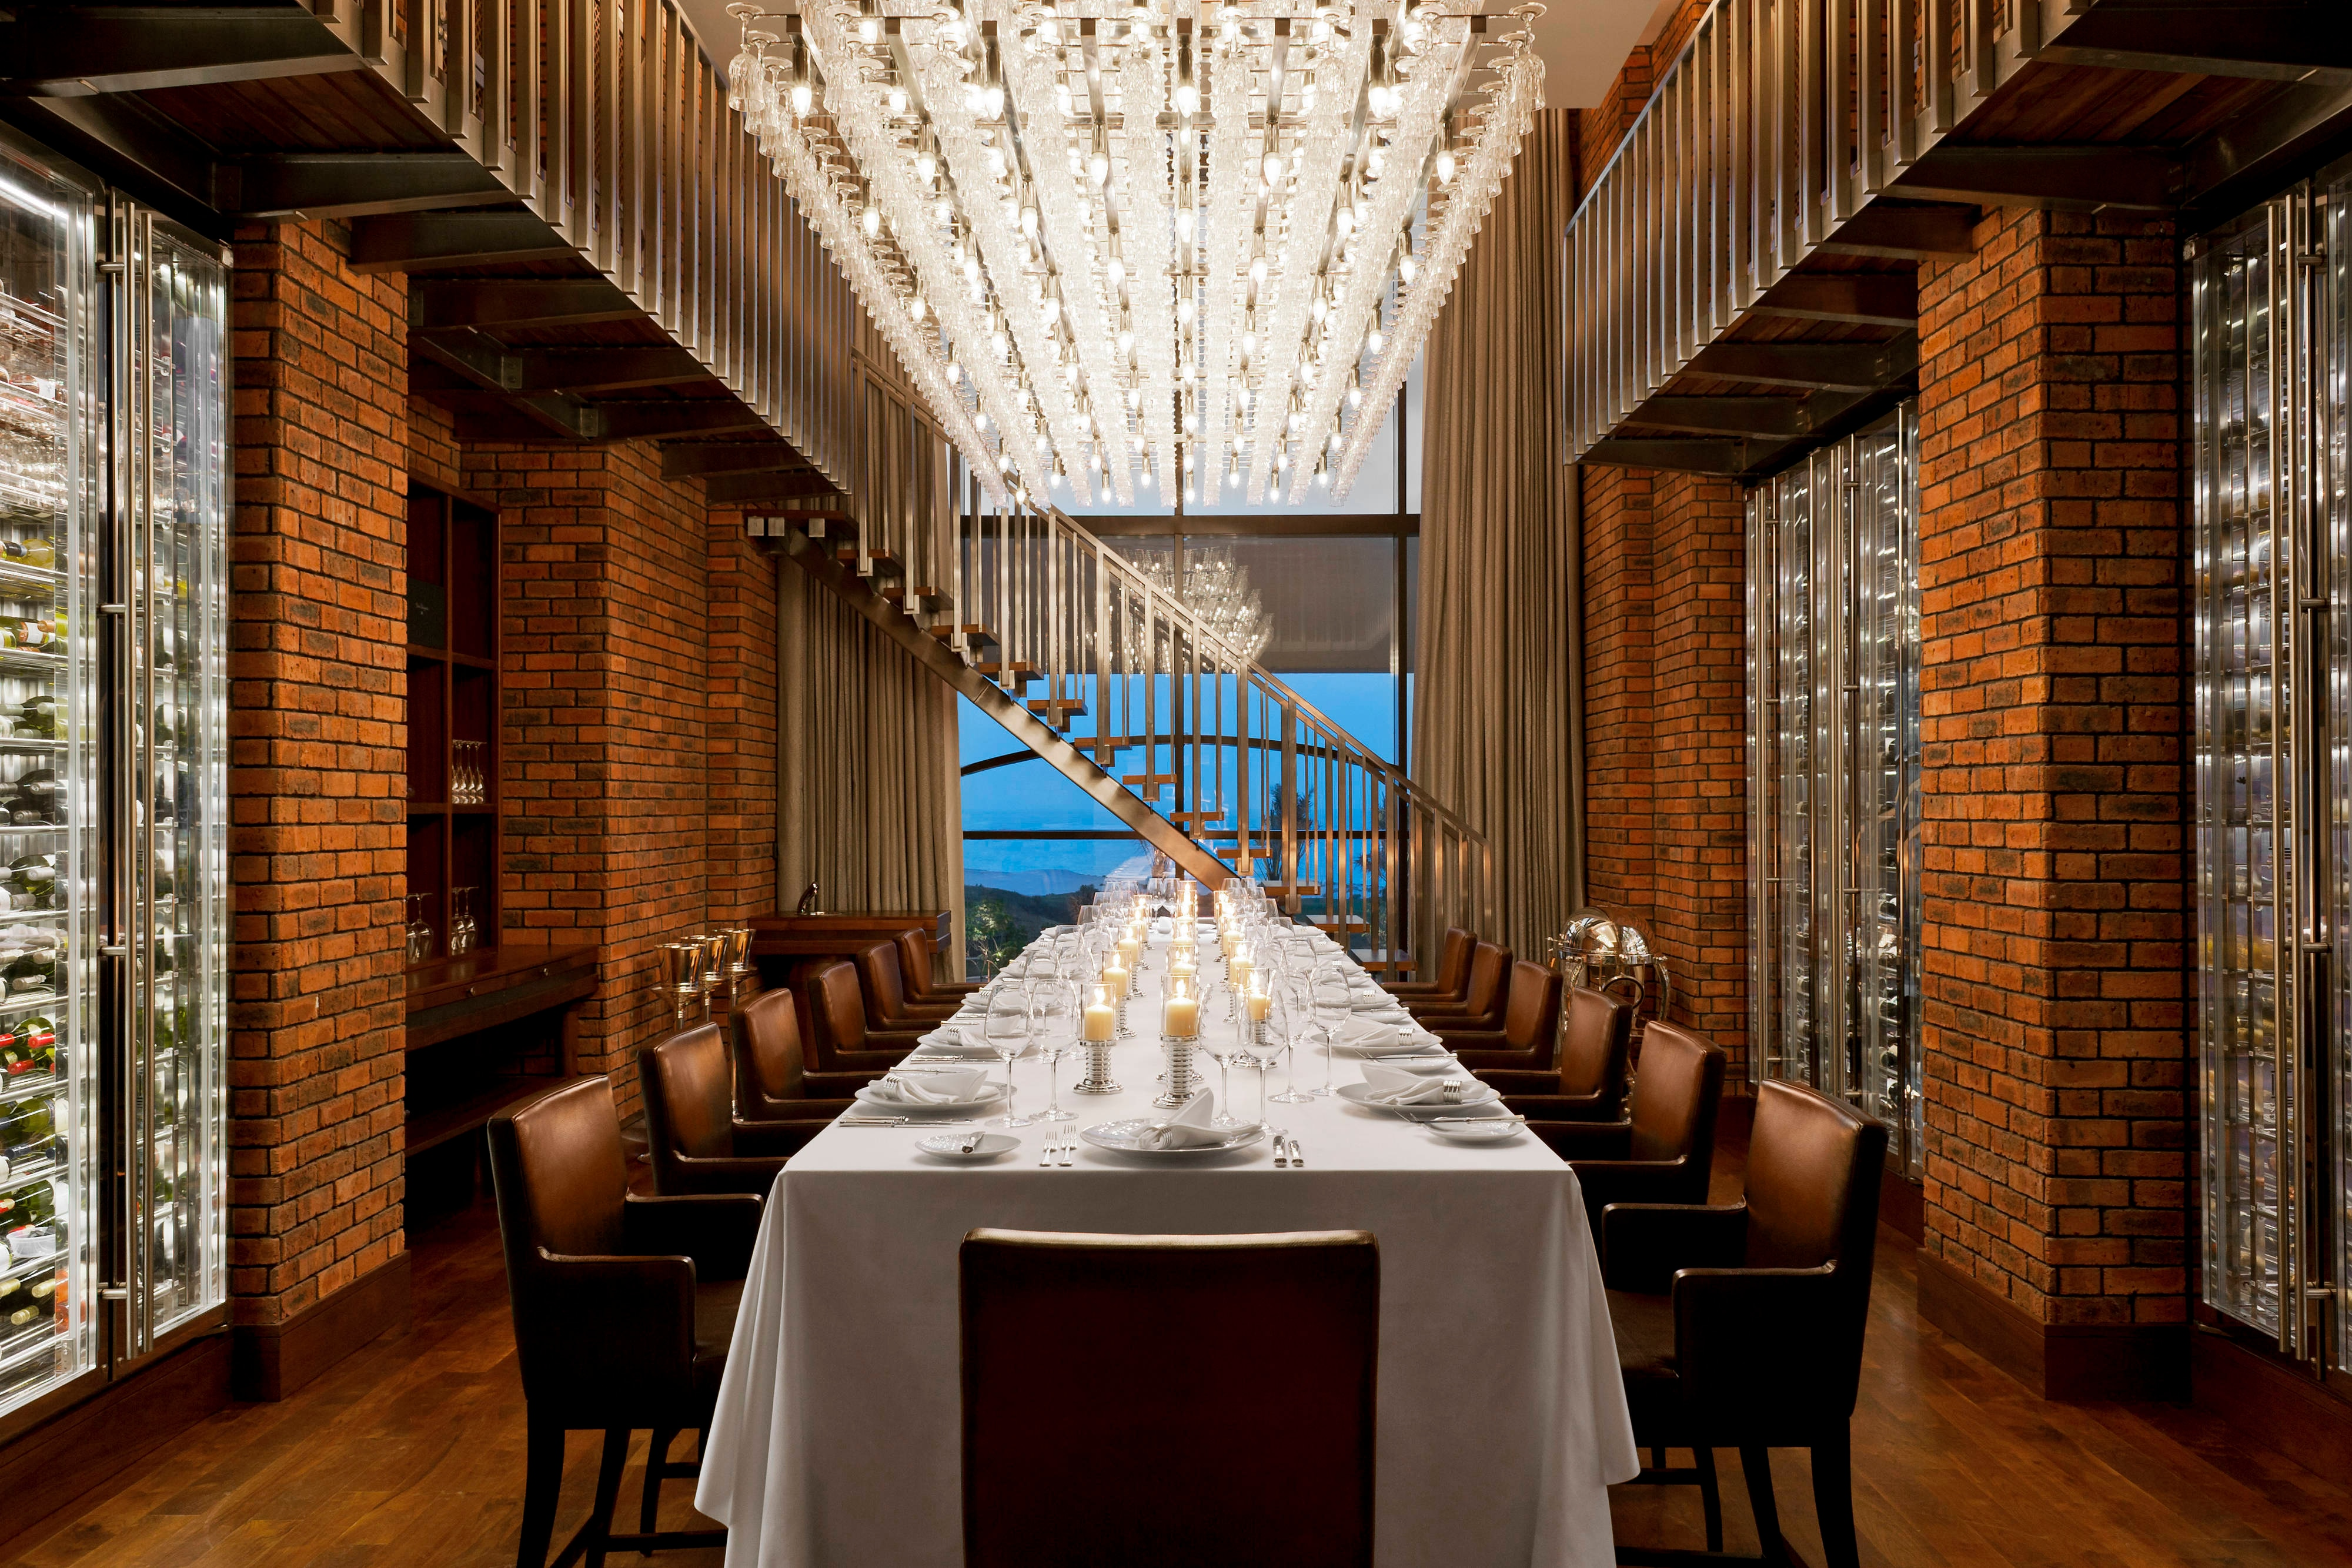 55&5th, The Grill - The Loft